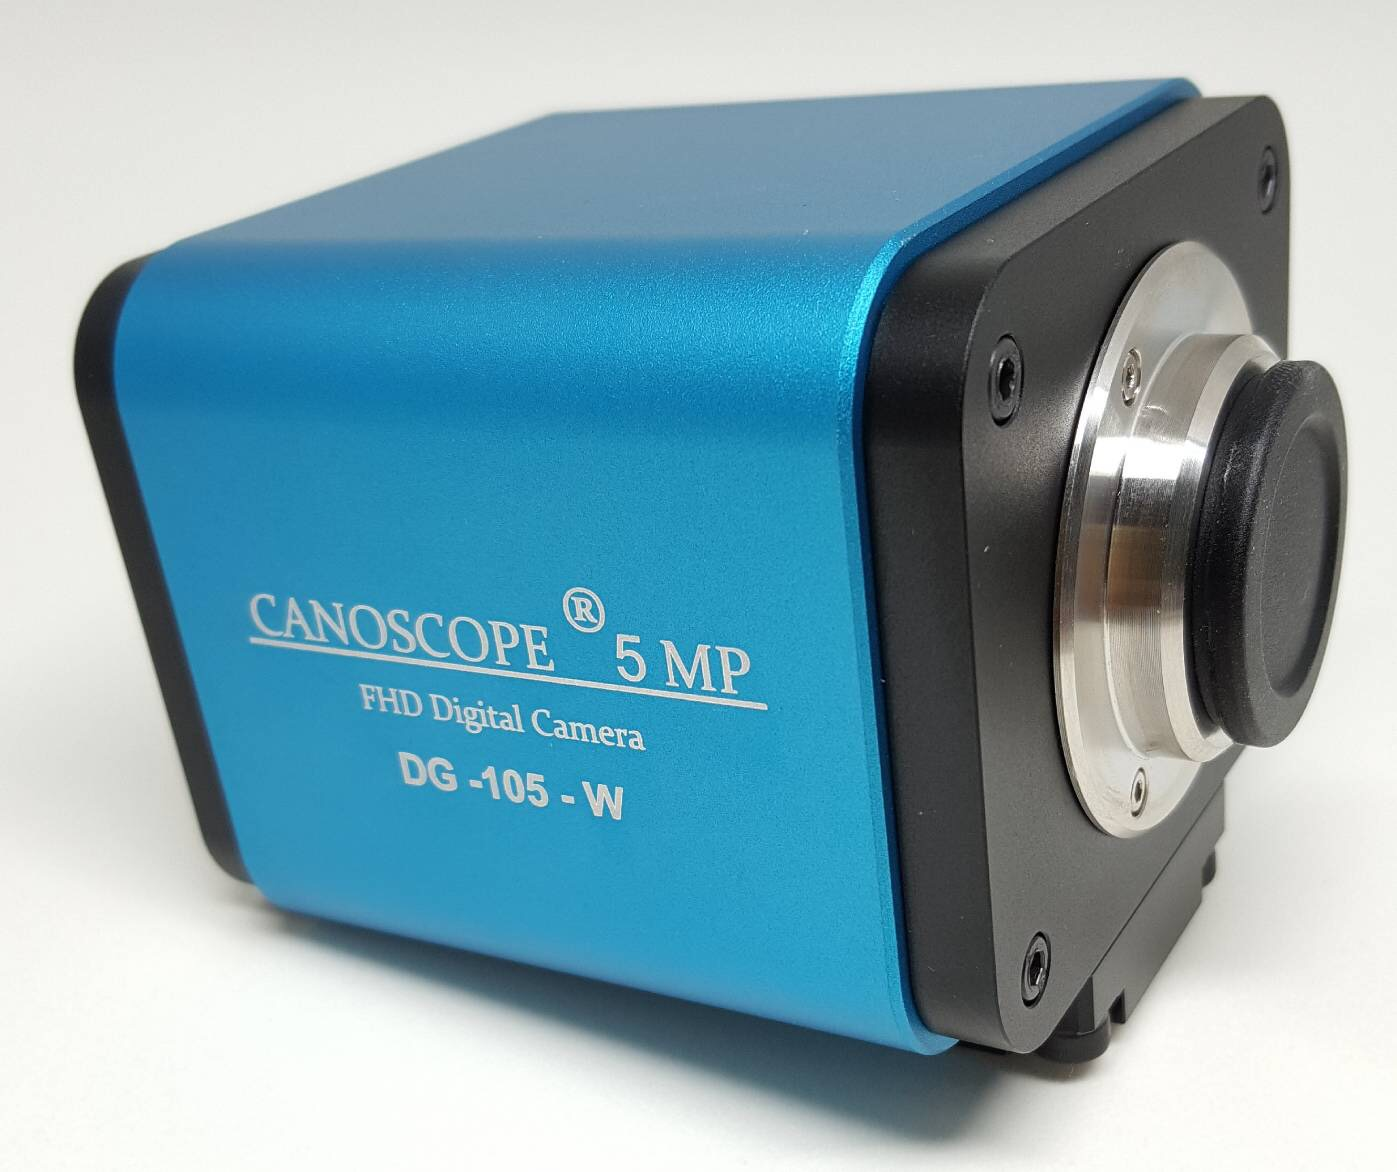 Canoscope DG-105-W FHD Digital Camera Micorscope